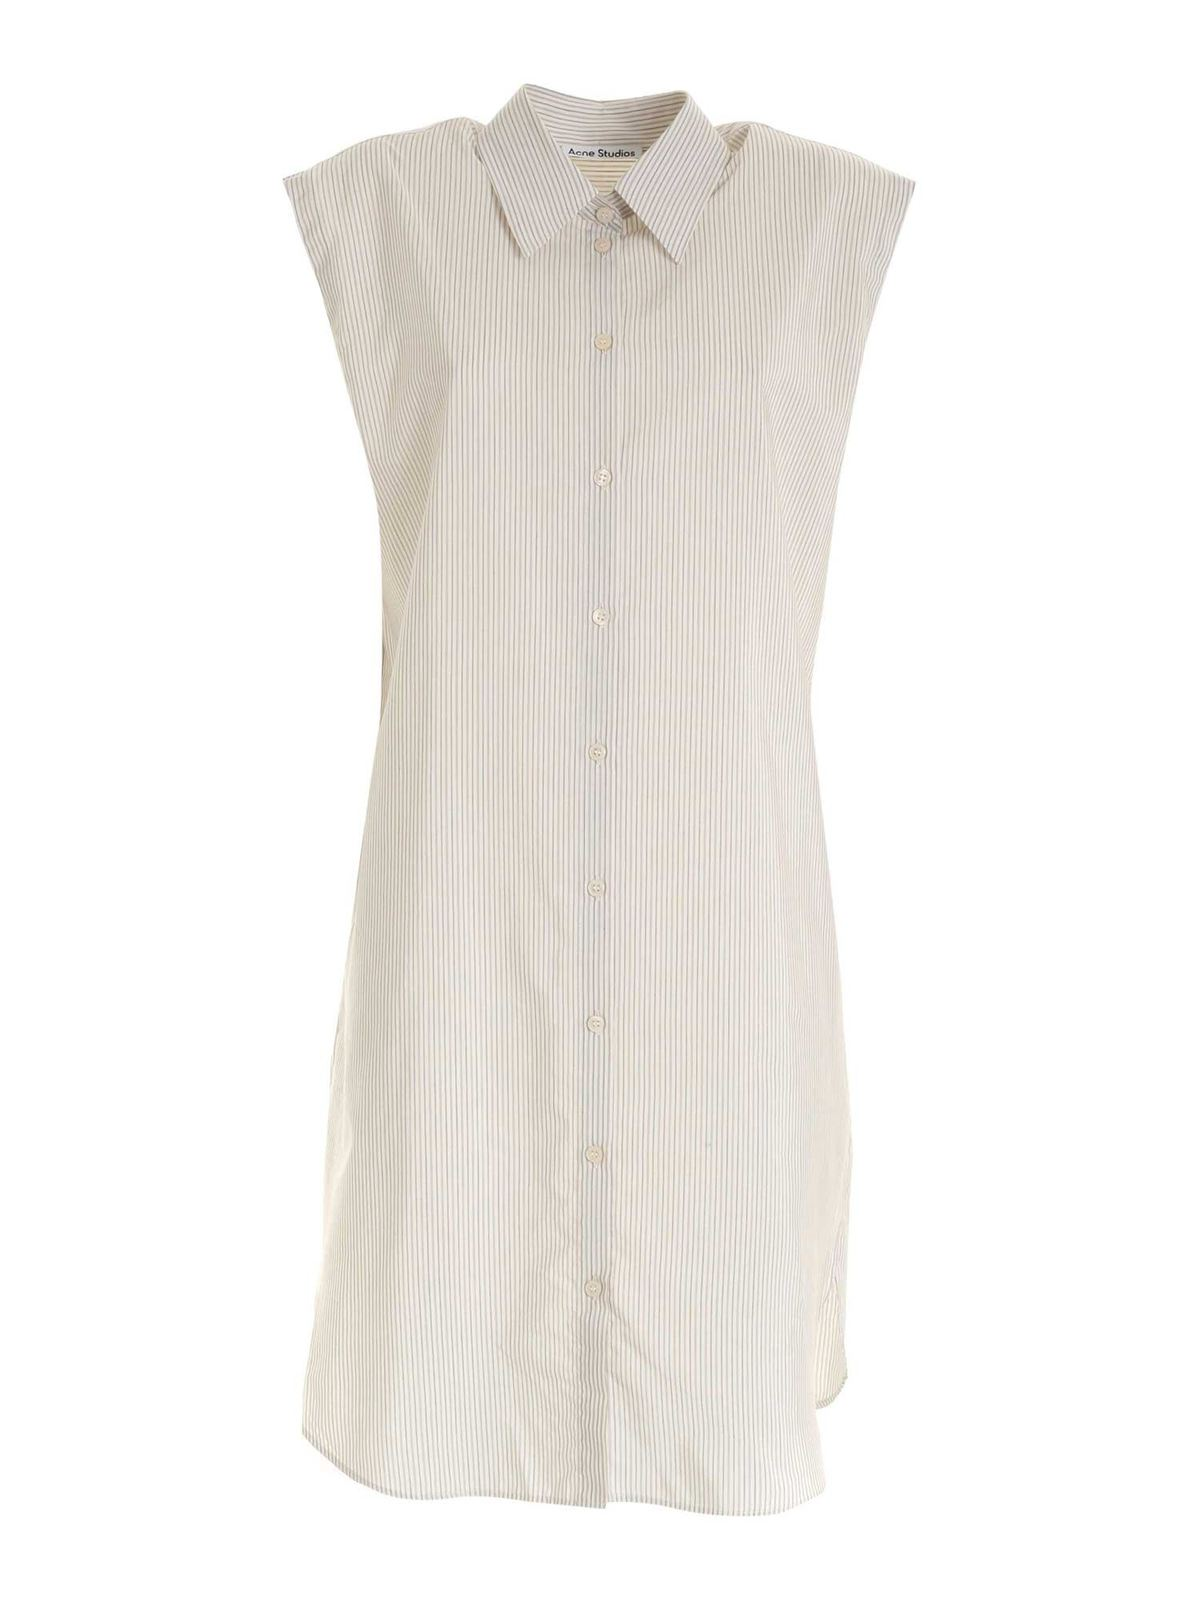 Acne Studios STRIPED SHIRT DRESS IN WHITE